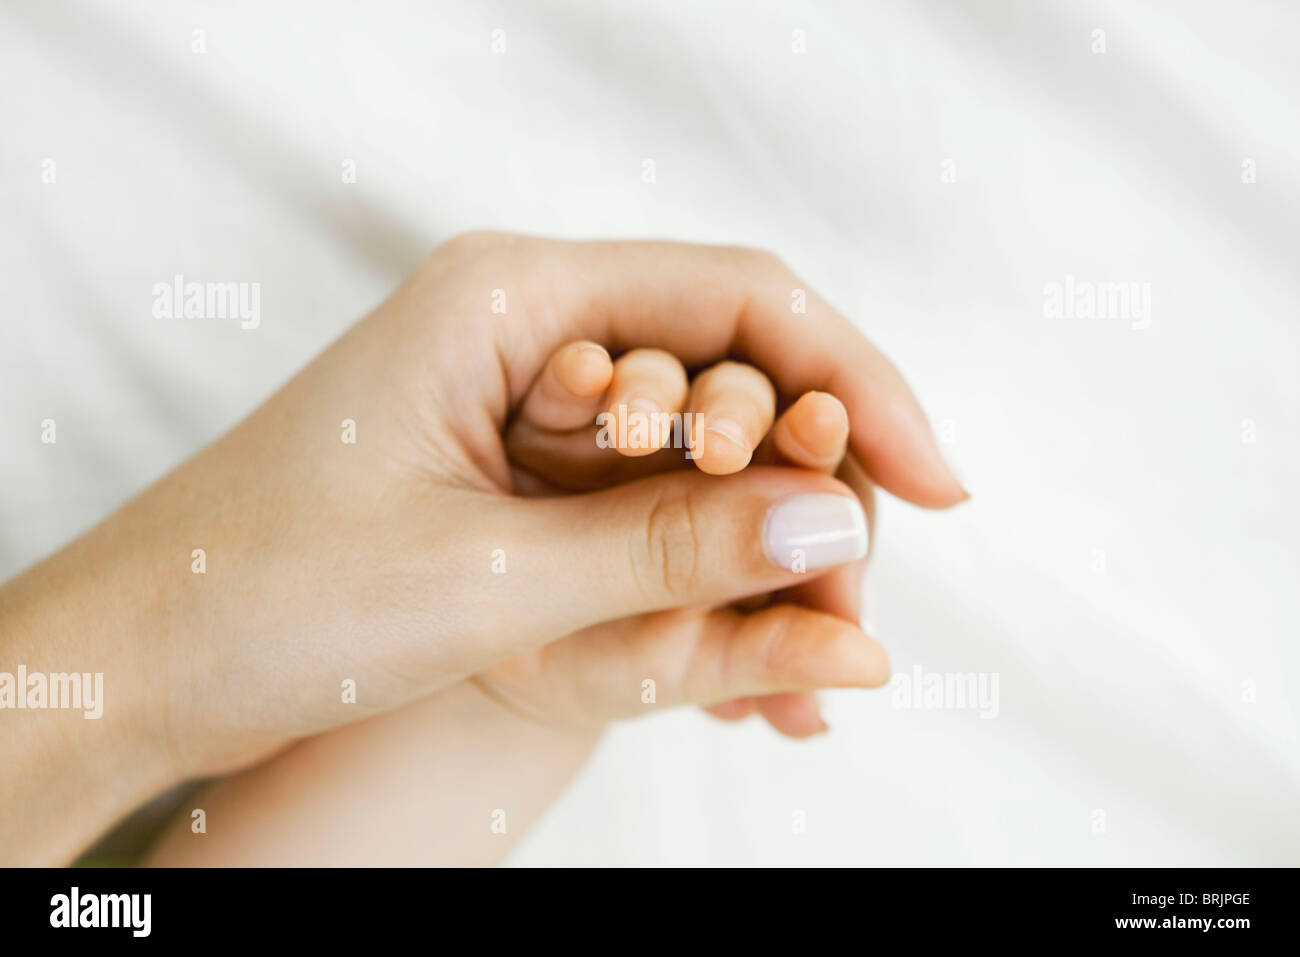 Mother holding infant's hand, close-up - Stock Image